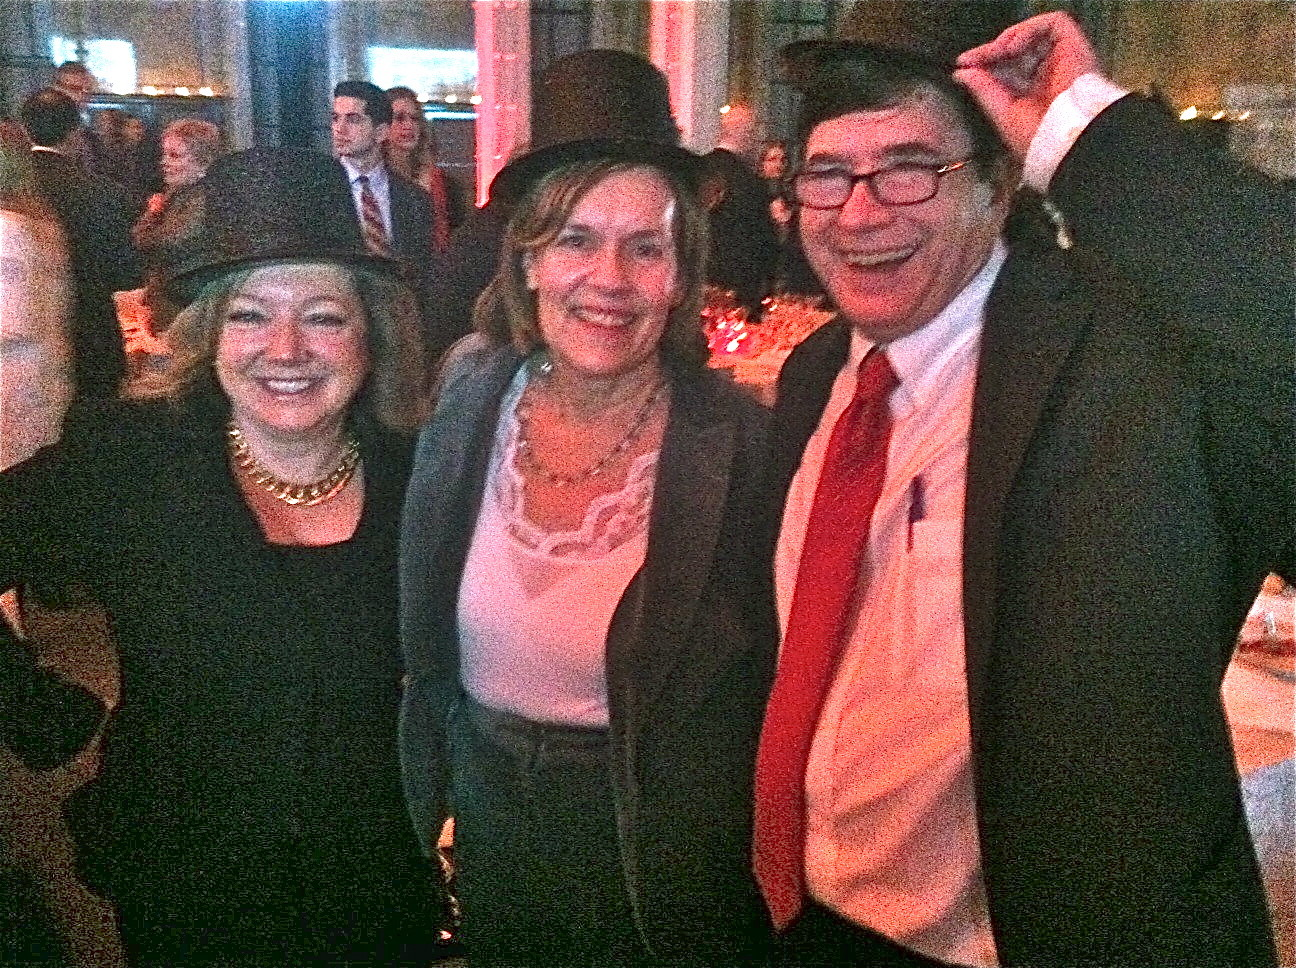 Marion Knowles, Lorraine & John at the party for Sandy Weill, 1-30-15